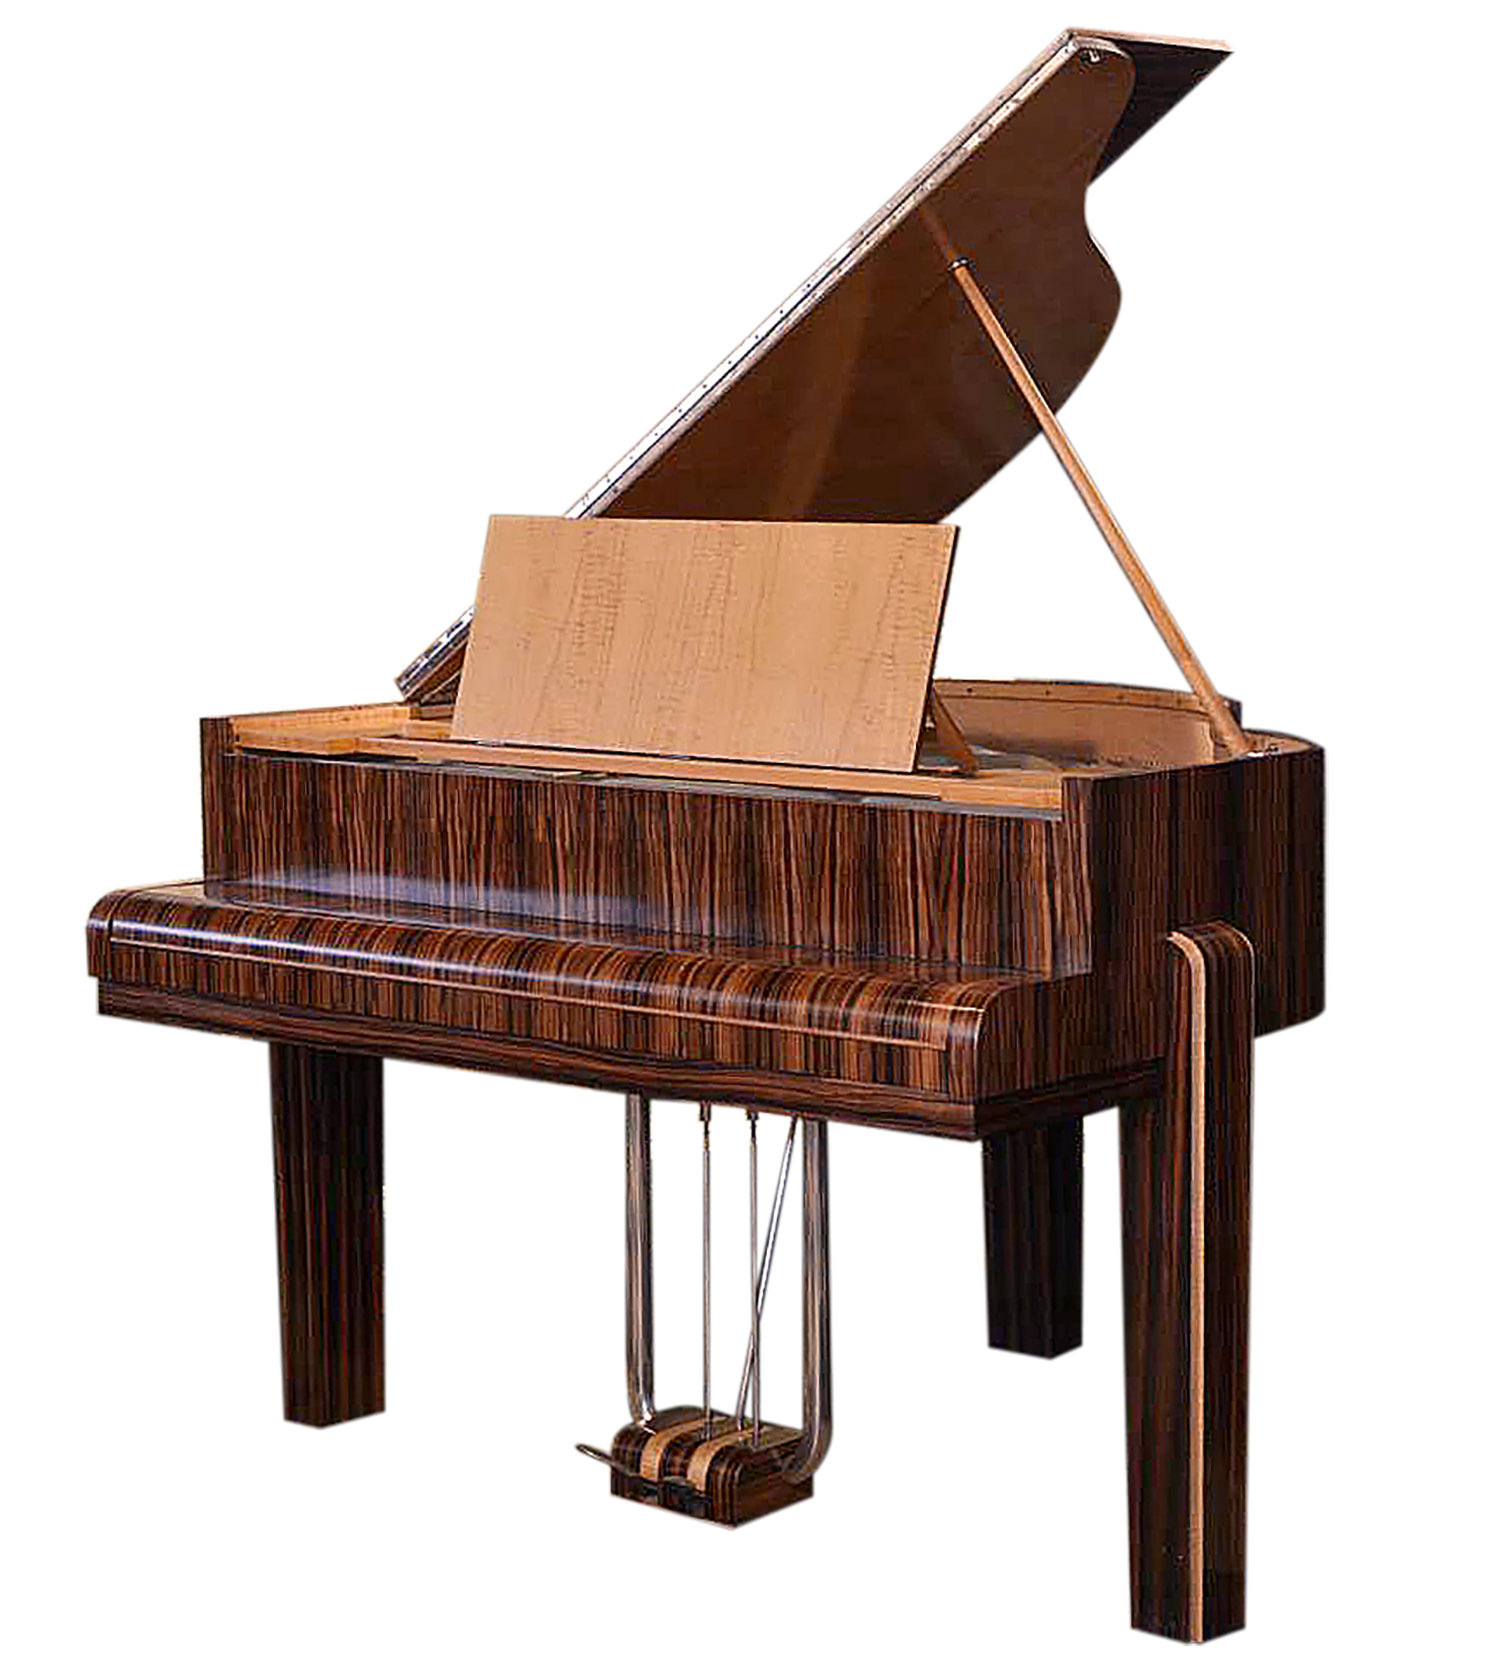 art deco grand piano gaveau paris 1932 period piano company. Black Bedroom Furniture Sets. Home Design Ideas